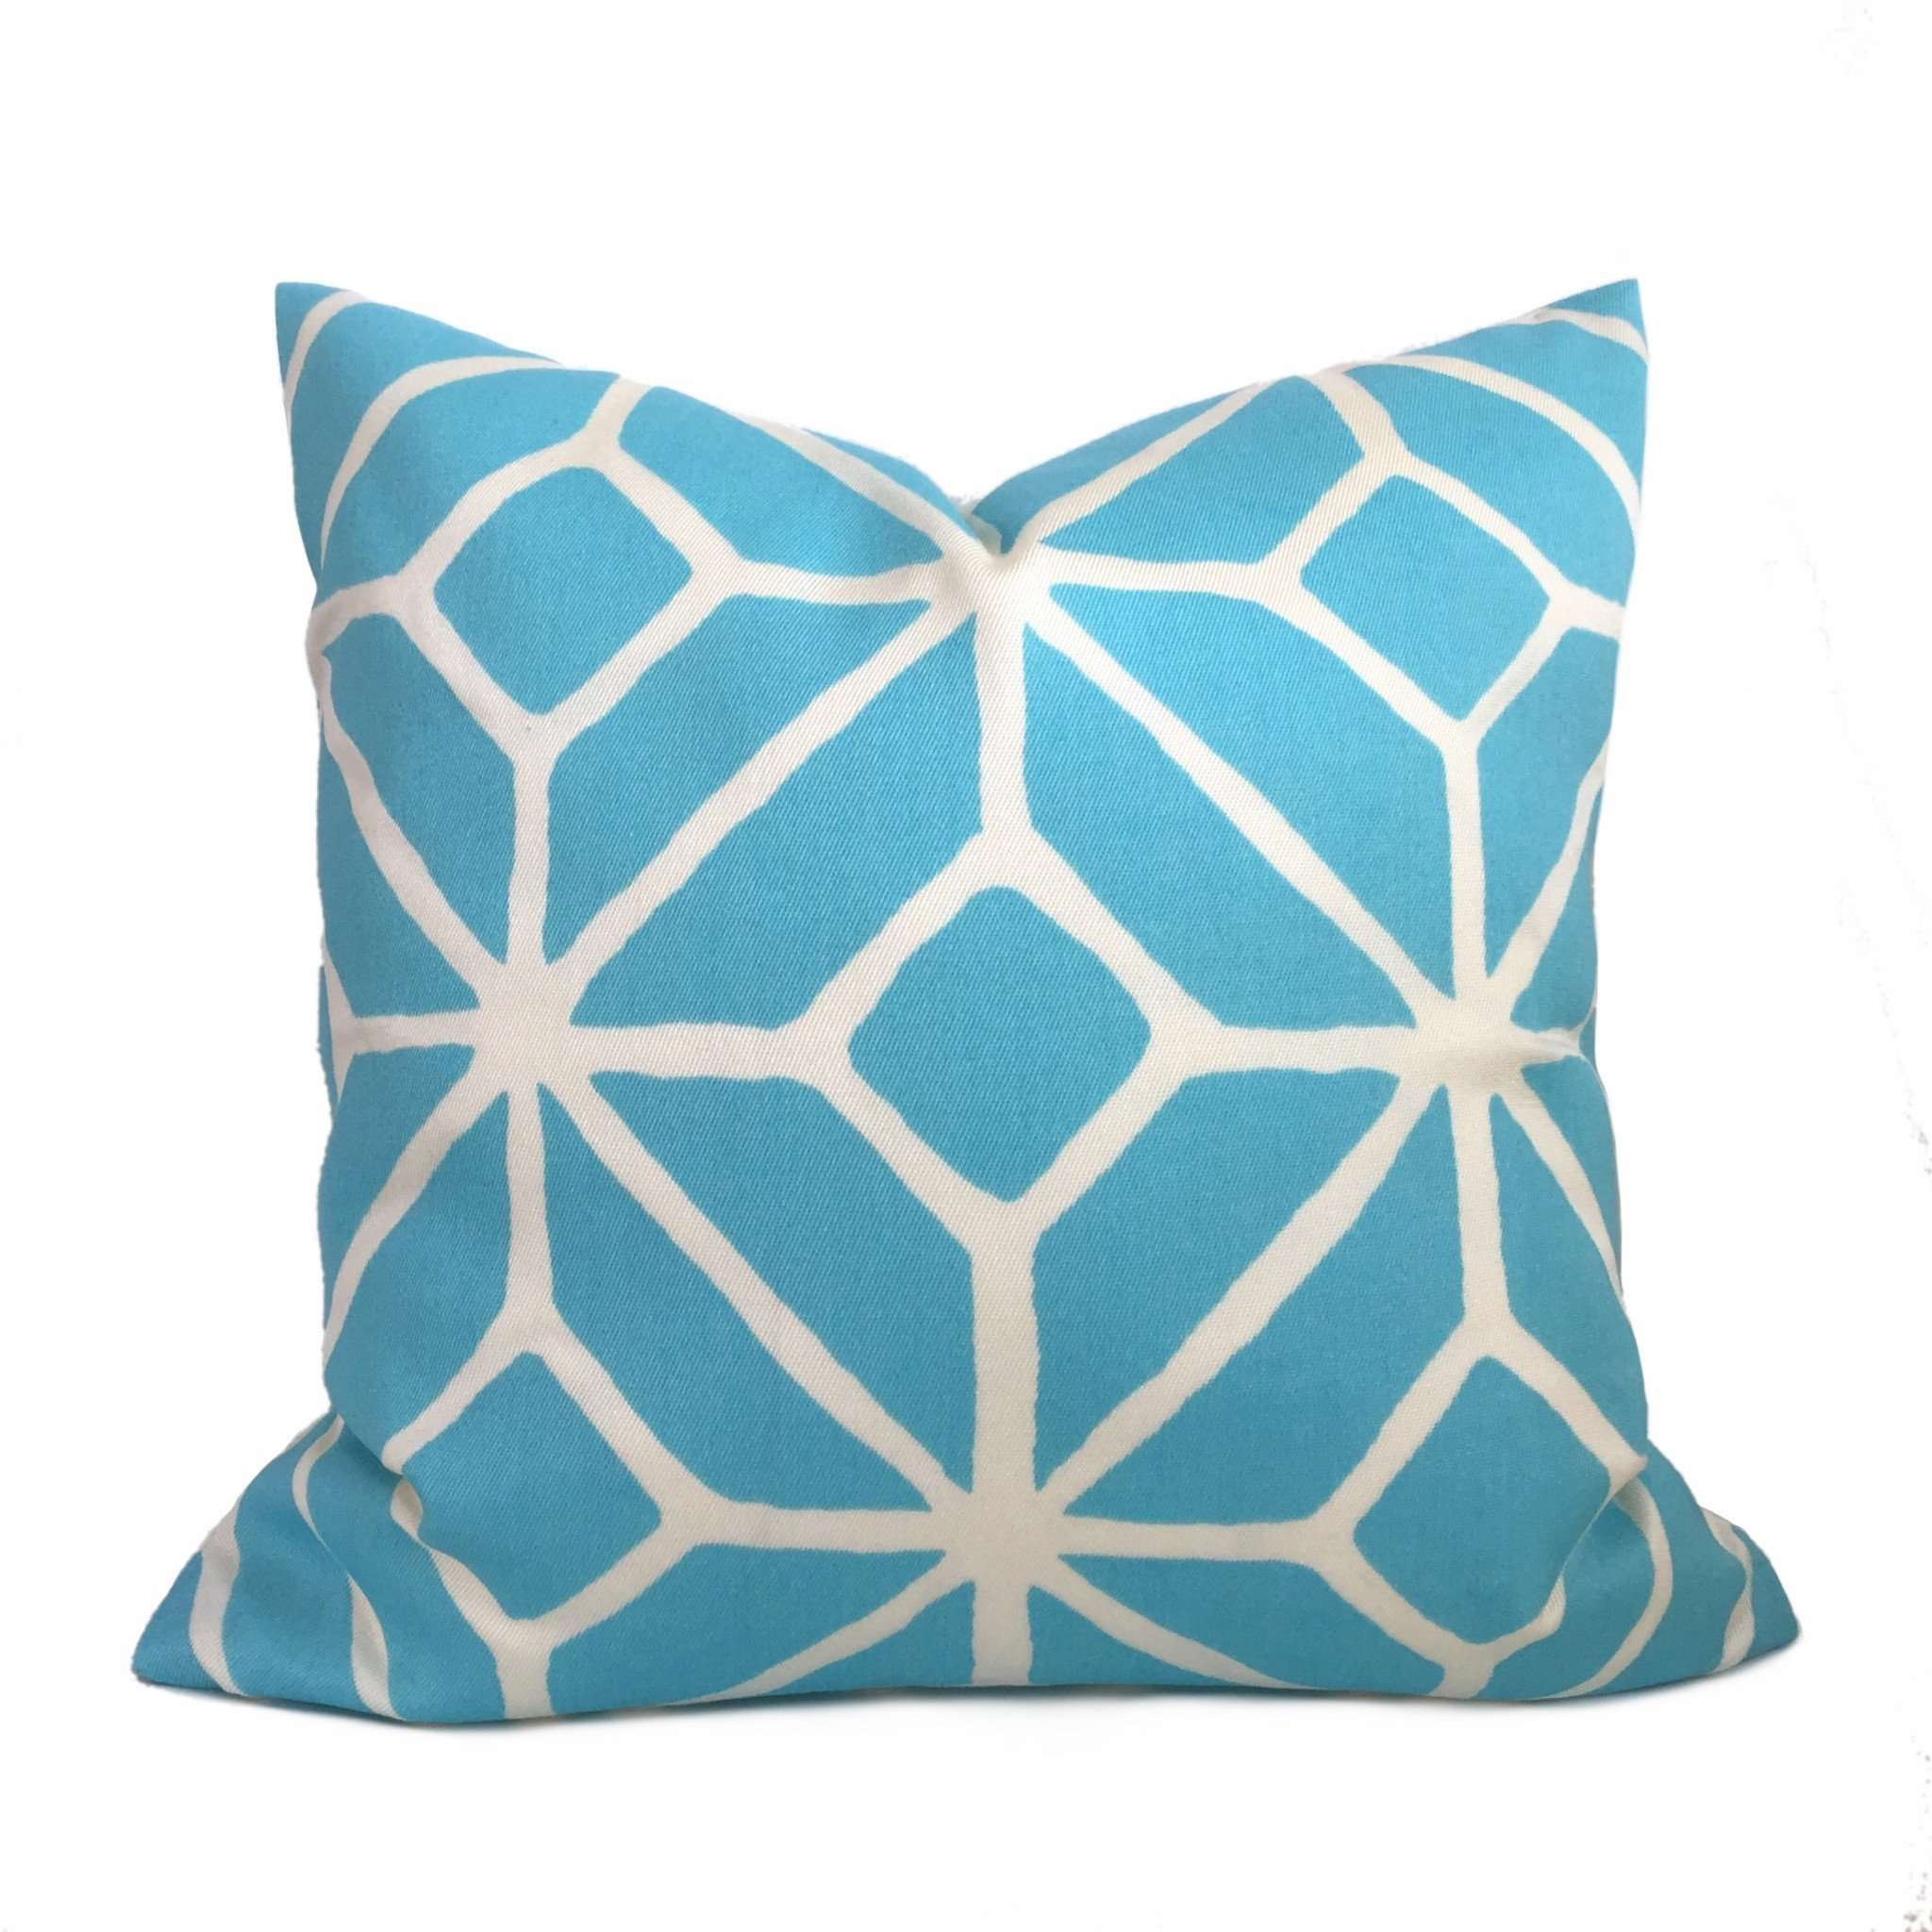 Trina Turk Schumacher Trellis Print Pool Blue White Indoor Outdoor Pillow Cover by Aloriam